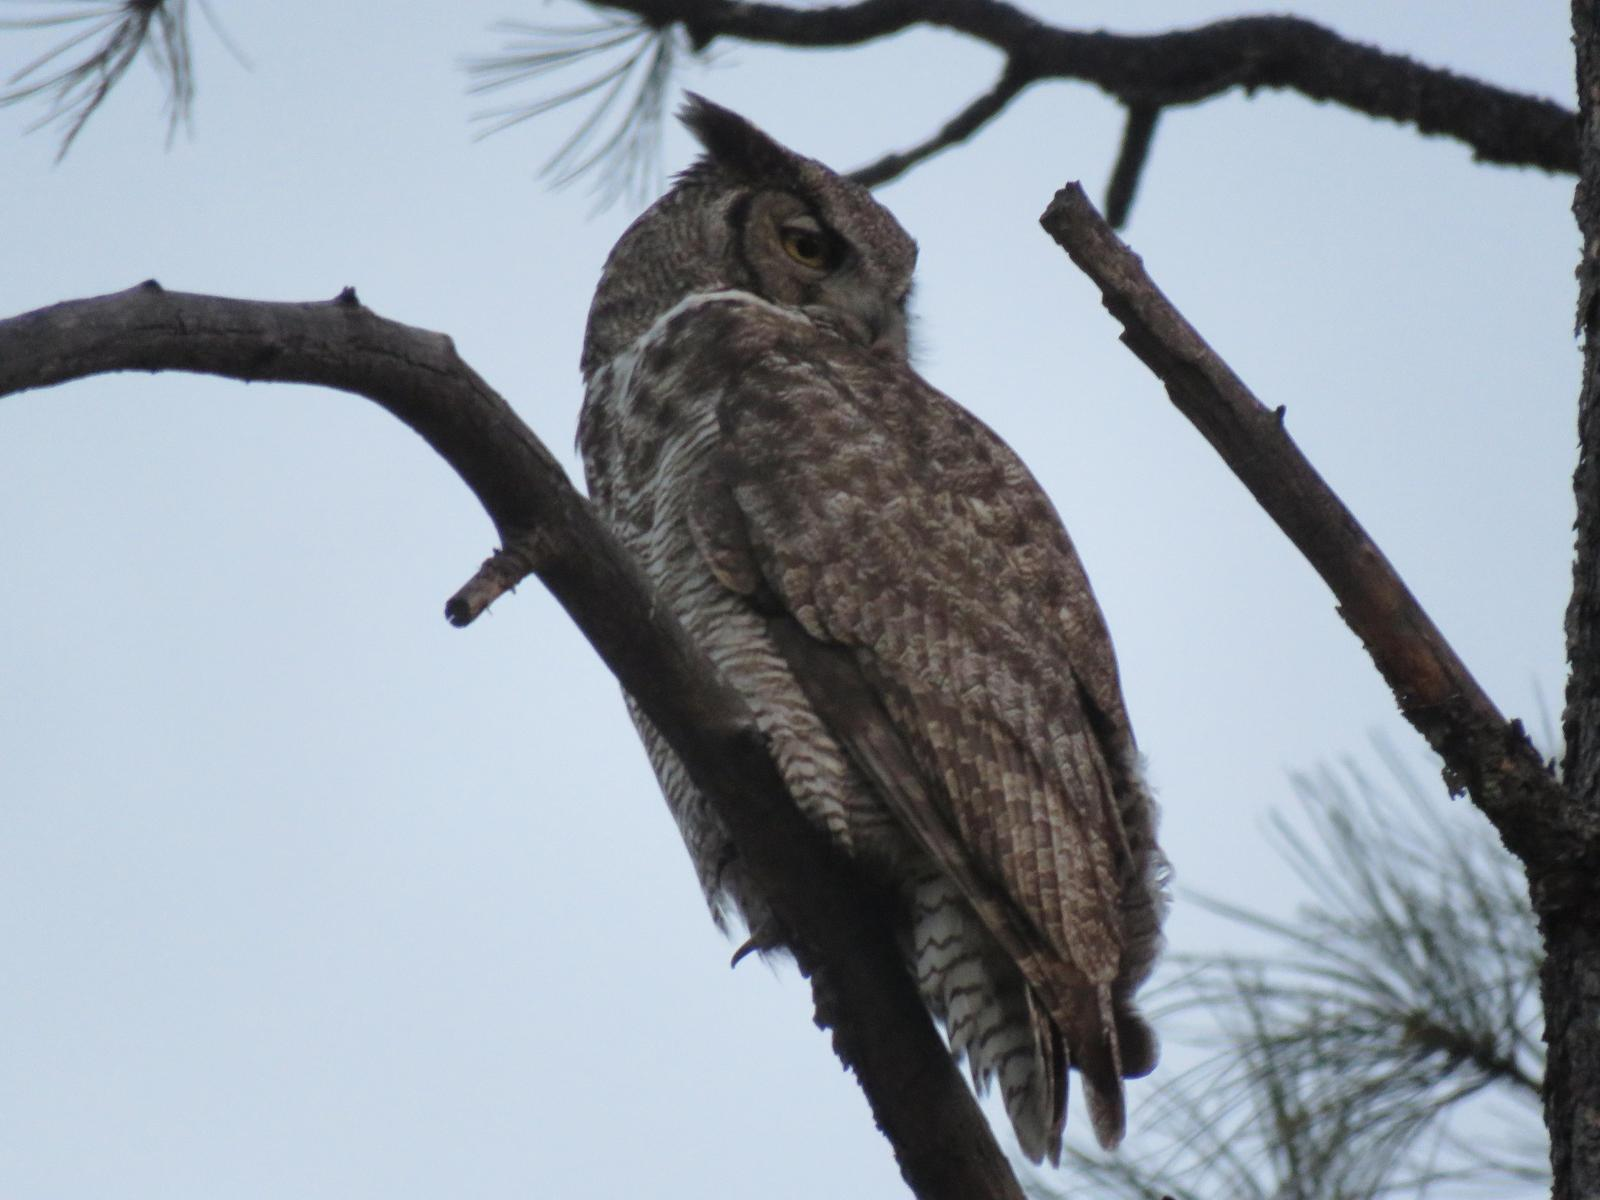 Great Horned Owl Photo by Nolan Keyes